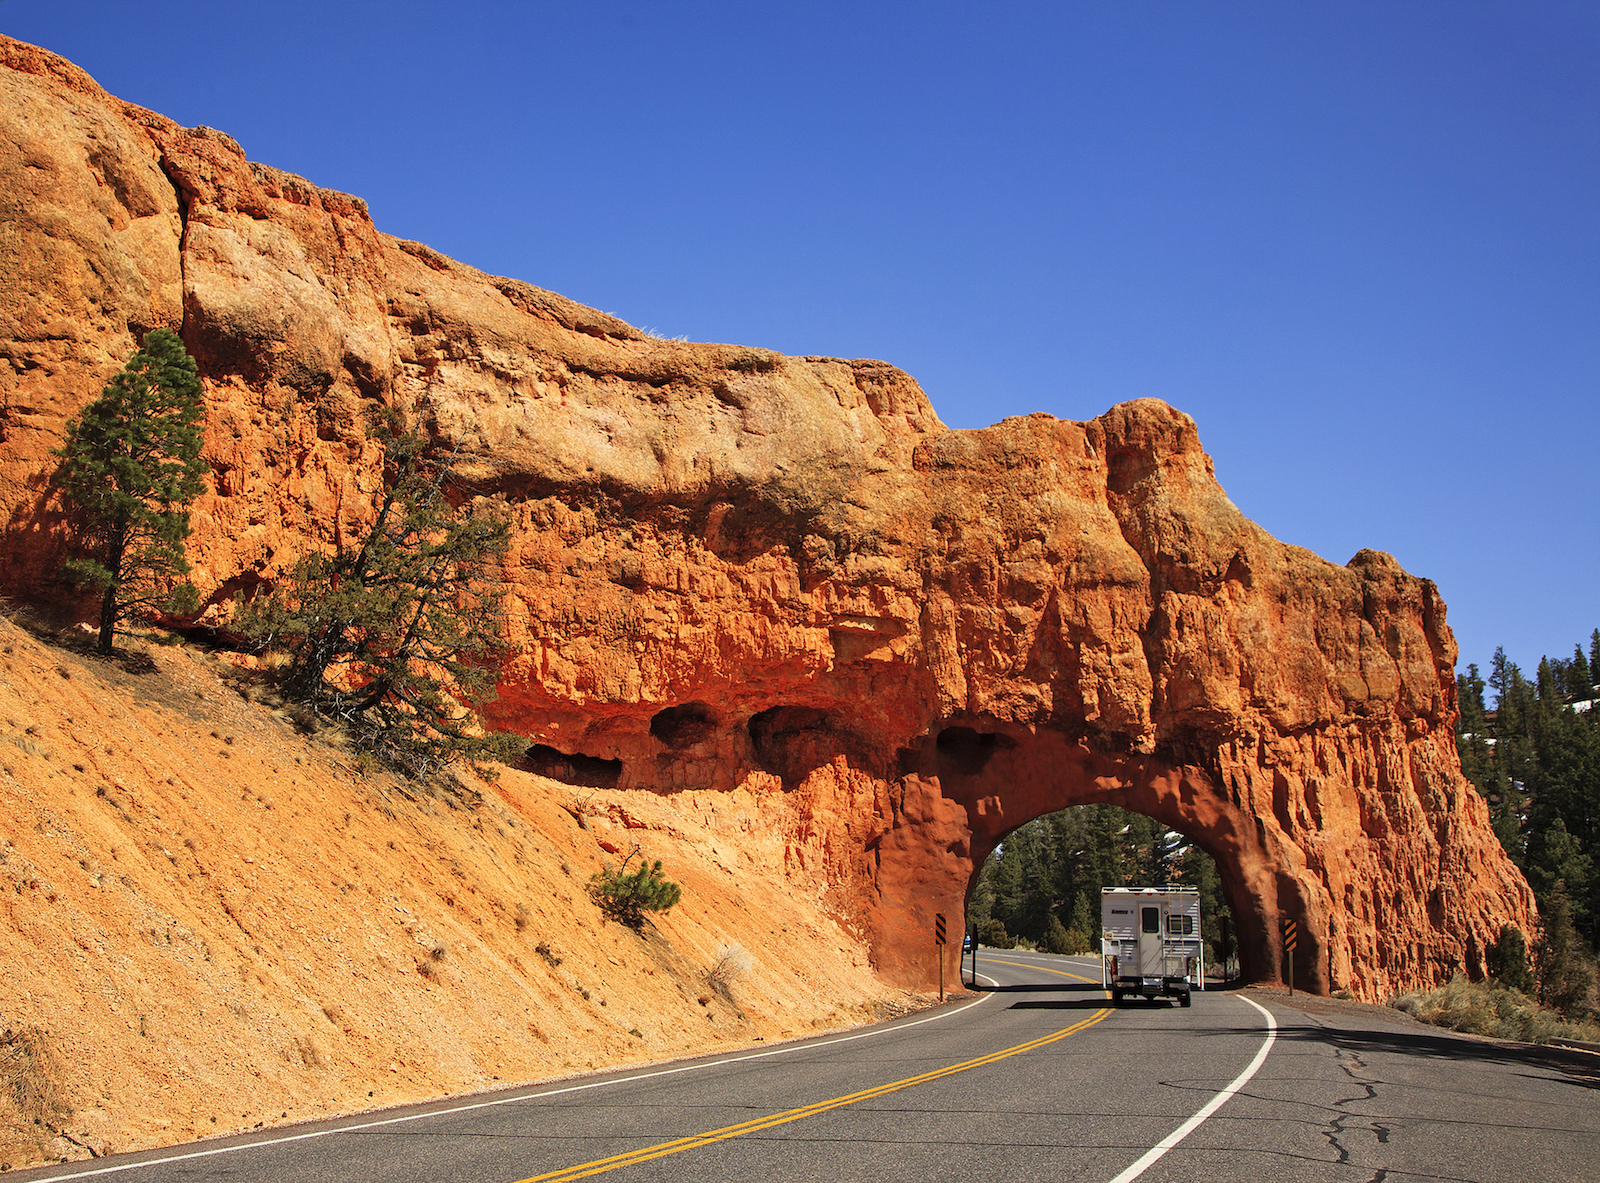 Truck with camper on Highway 12 Scenic Bypass in Utah